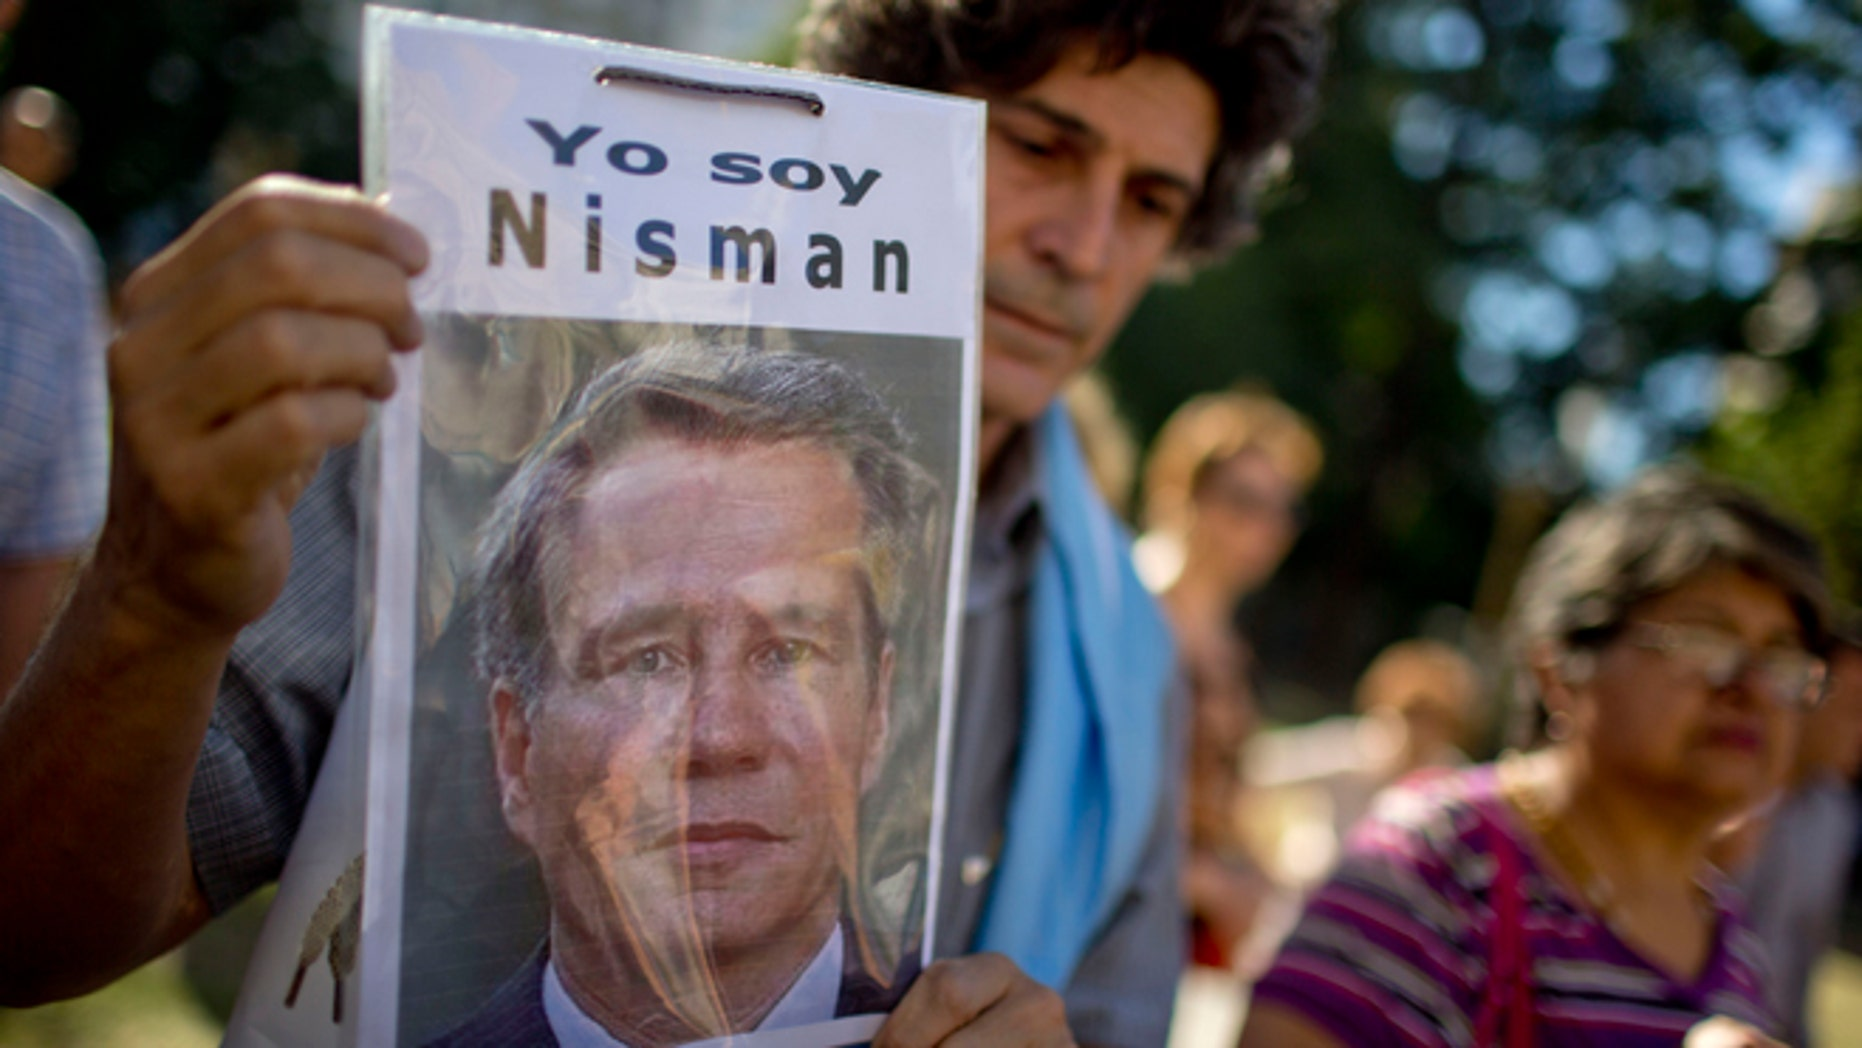 """A demonstrator holds a photo of late prosecutor Alberto Nisman that reads in Spanish """"I am Nisman"""" during an protest to demand justice after more than one month since his death outside a court house in Buenos Aires, Argentina, Wednesday, March 18, 2015. Nisman was found dead in his bathroom on January 18, on the eve of congressional hearings where he was due to present his accusations against President Cristina Fernandez of shielding Iranian officials from prosecution over the 1994 bombing of a Buenos Aires Jewish center. (AP Photo/Natacha Pisarenko)"""